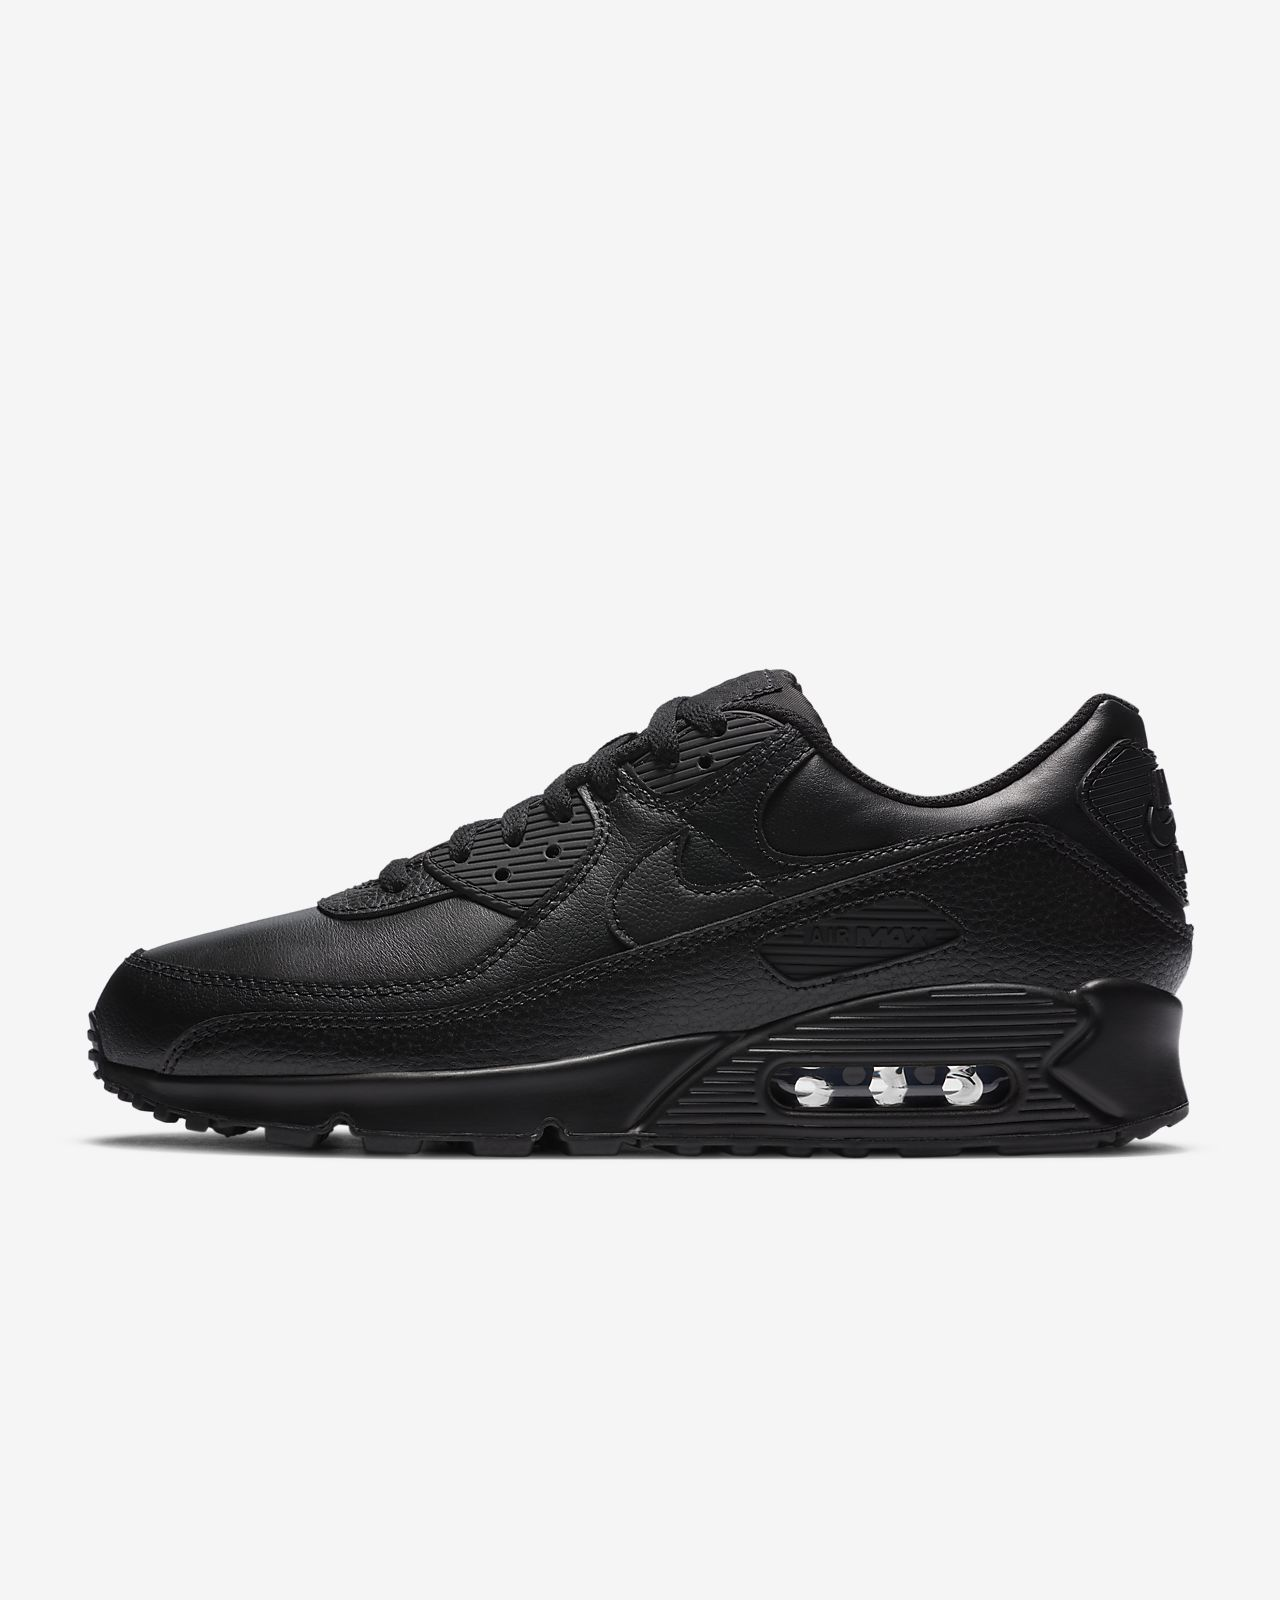 Air Max 90 LTR Men's Shoe